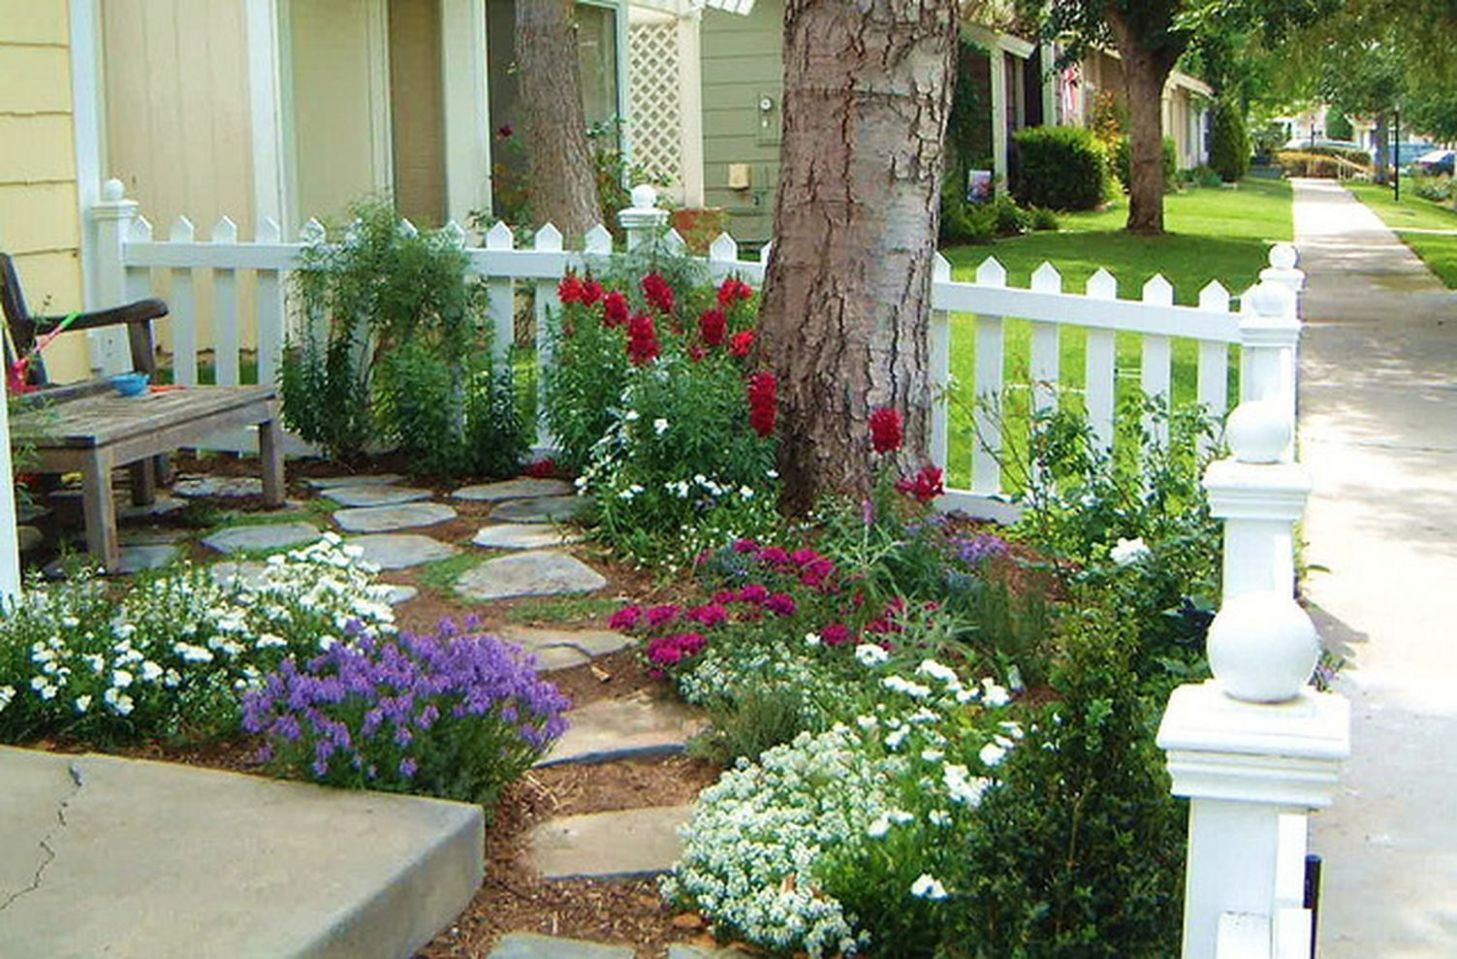 9 Cute and Simple Tiny Patio Garden Ideas | Small front yard ..